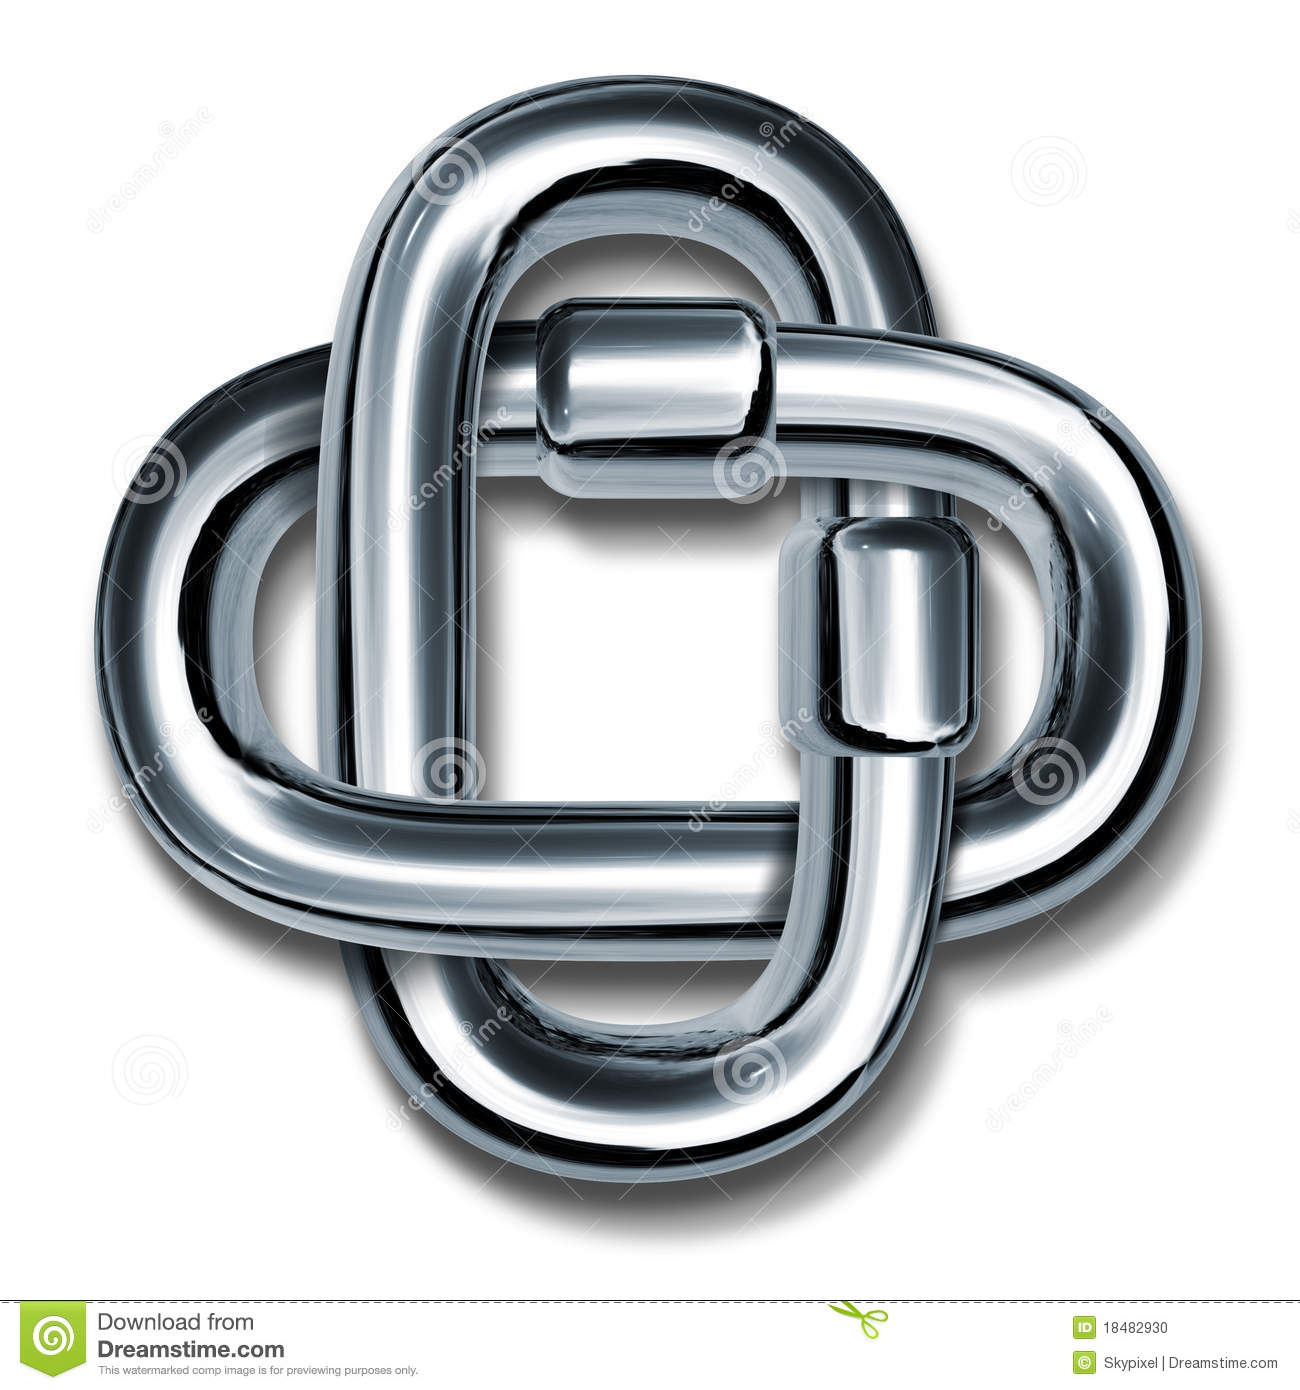 Chain links symbol of strength and unity stock illustration chain links symbol of strength and unity biocorpaavc Image collections